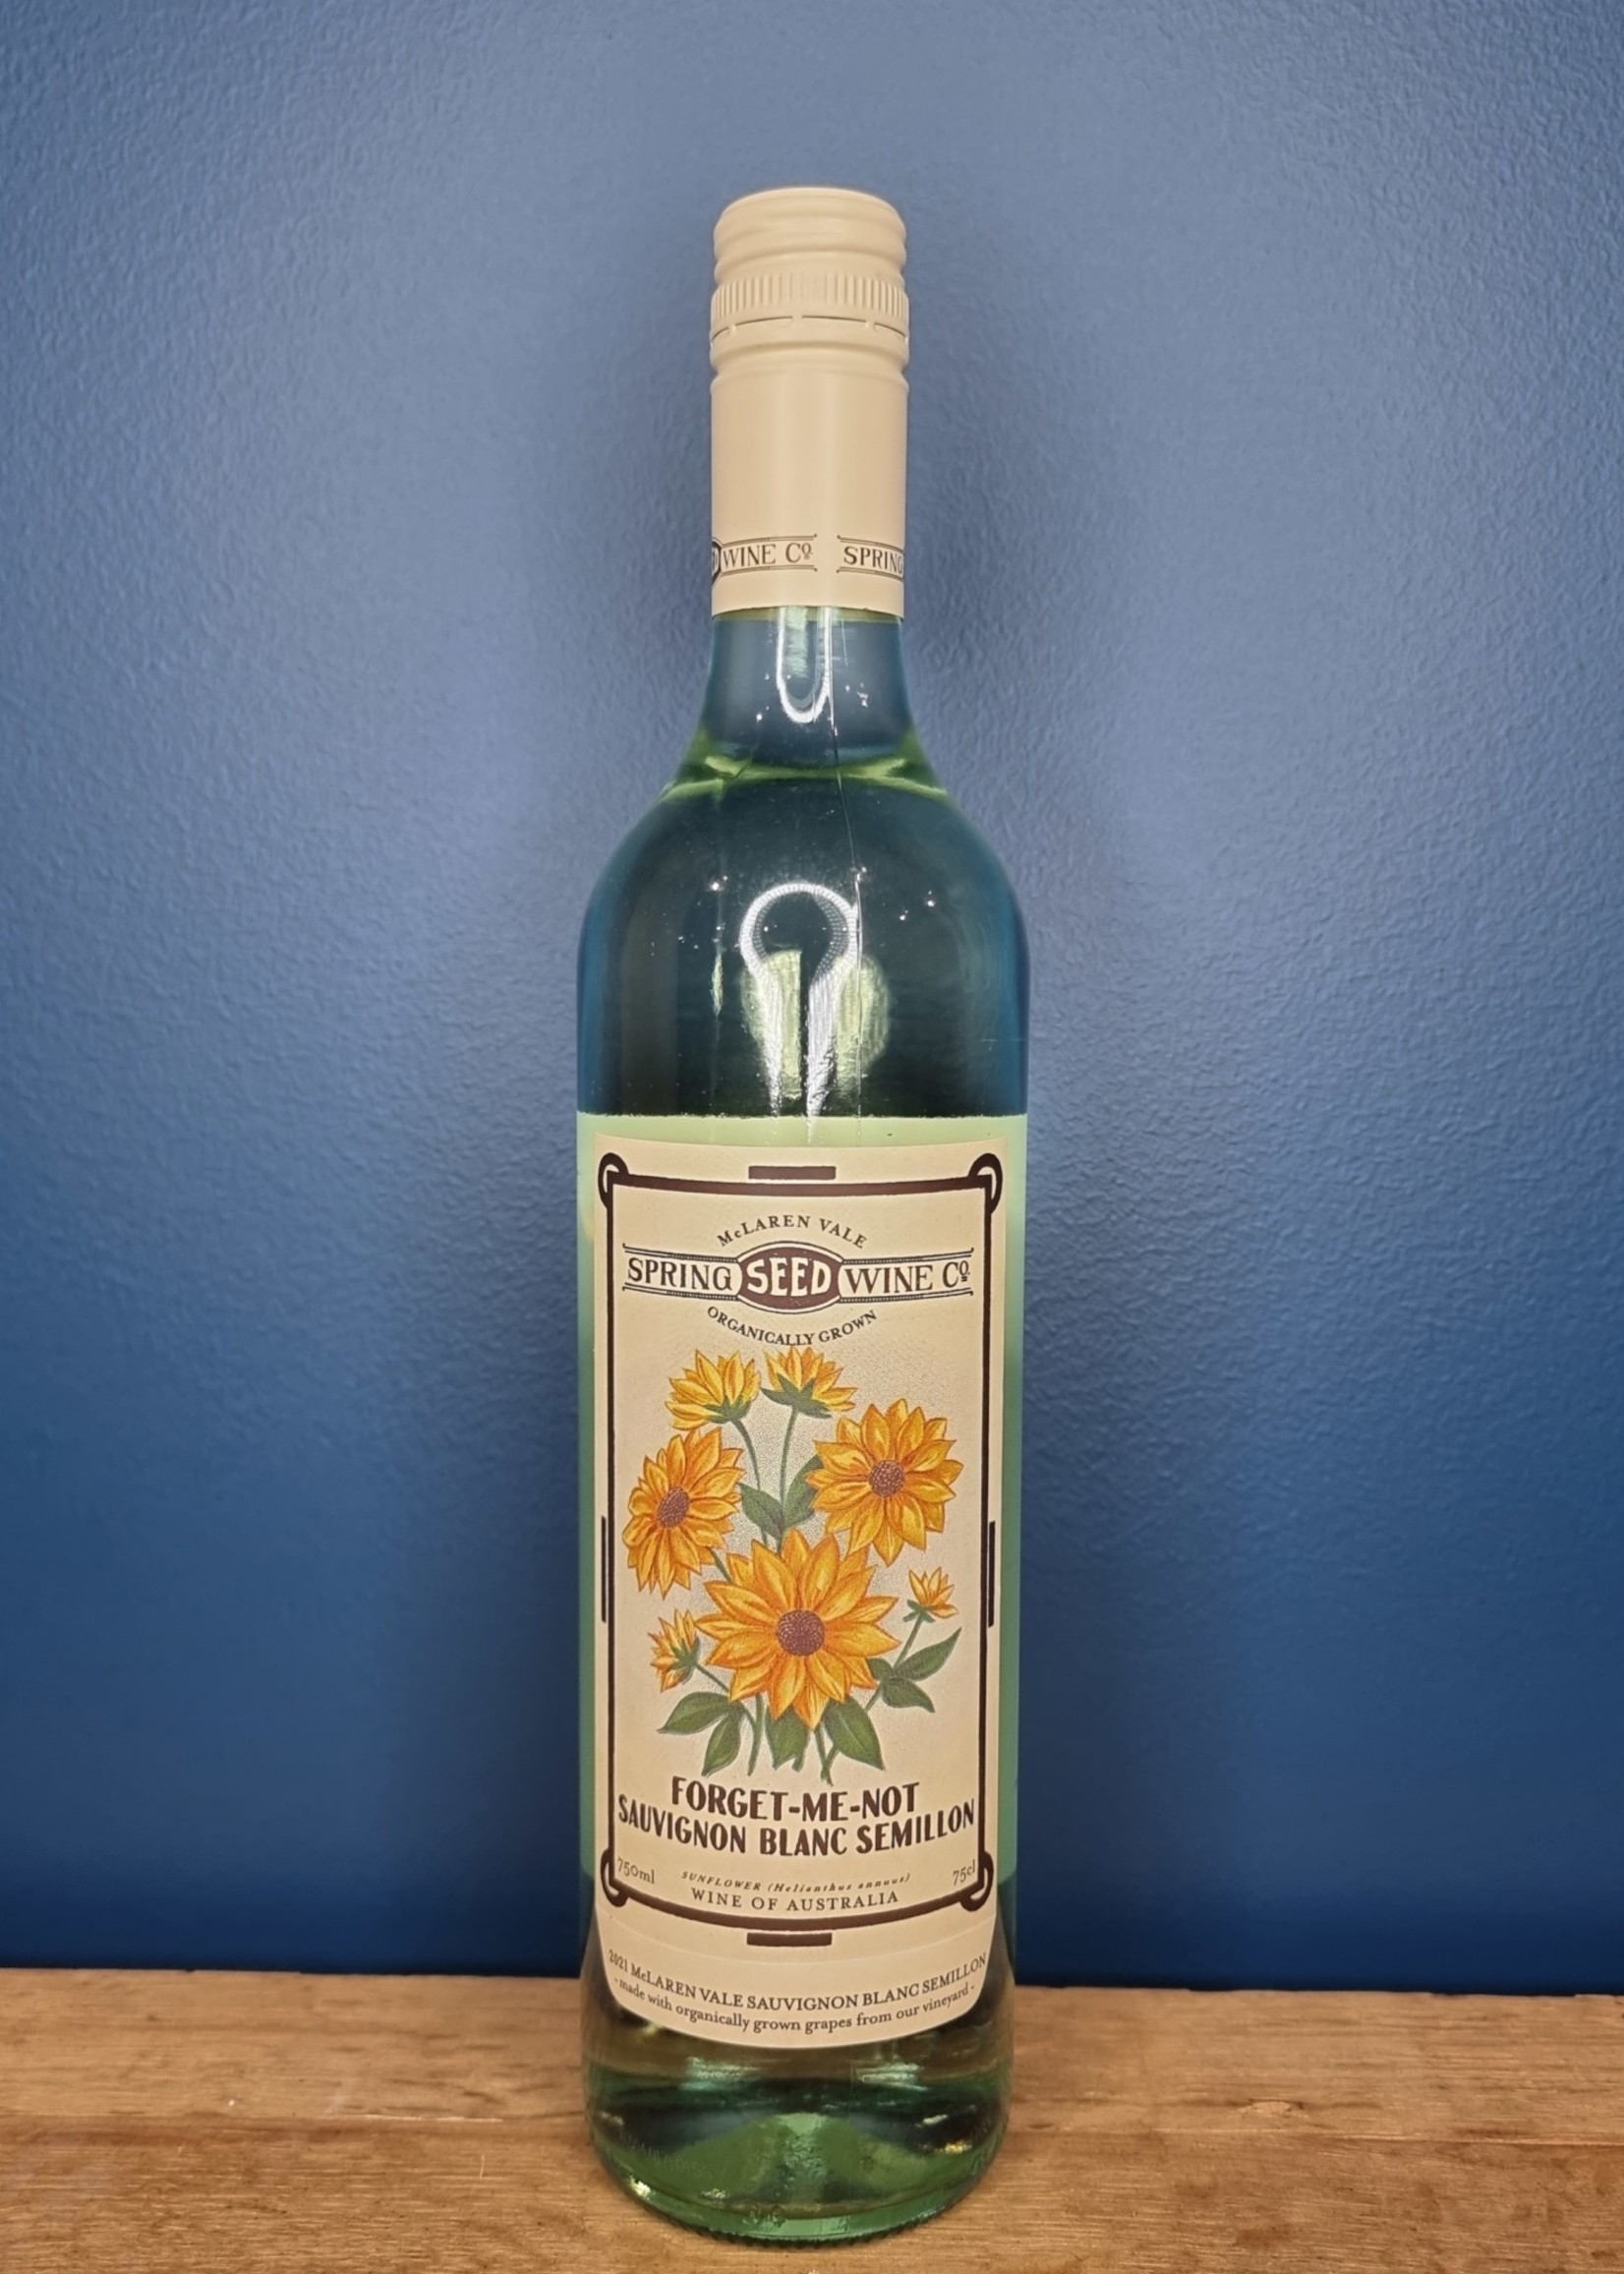 Spring Seed Spring Seed Forget Me Not Semillion Sauvignon Blanc